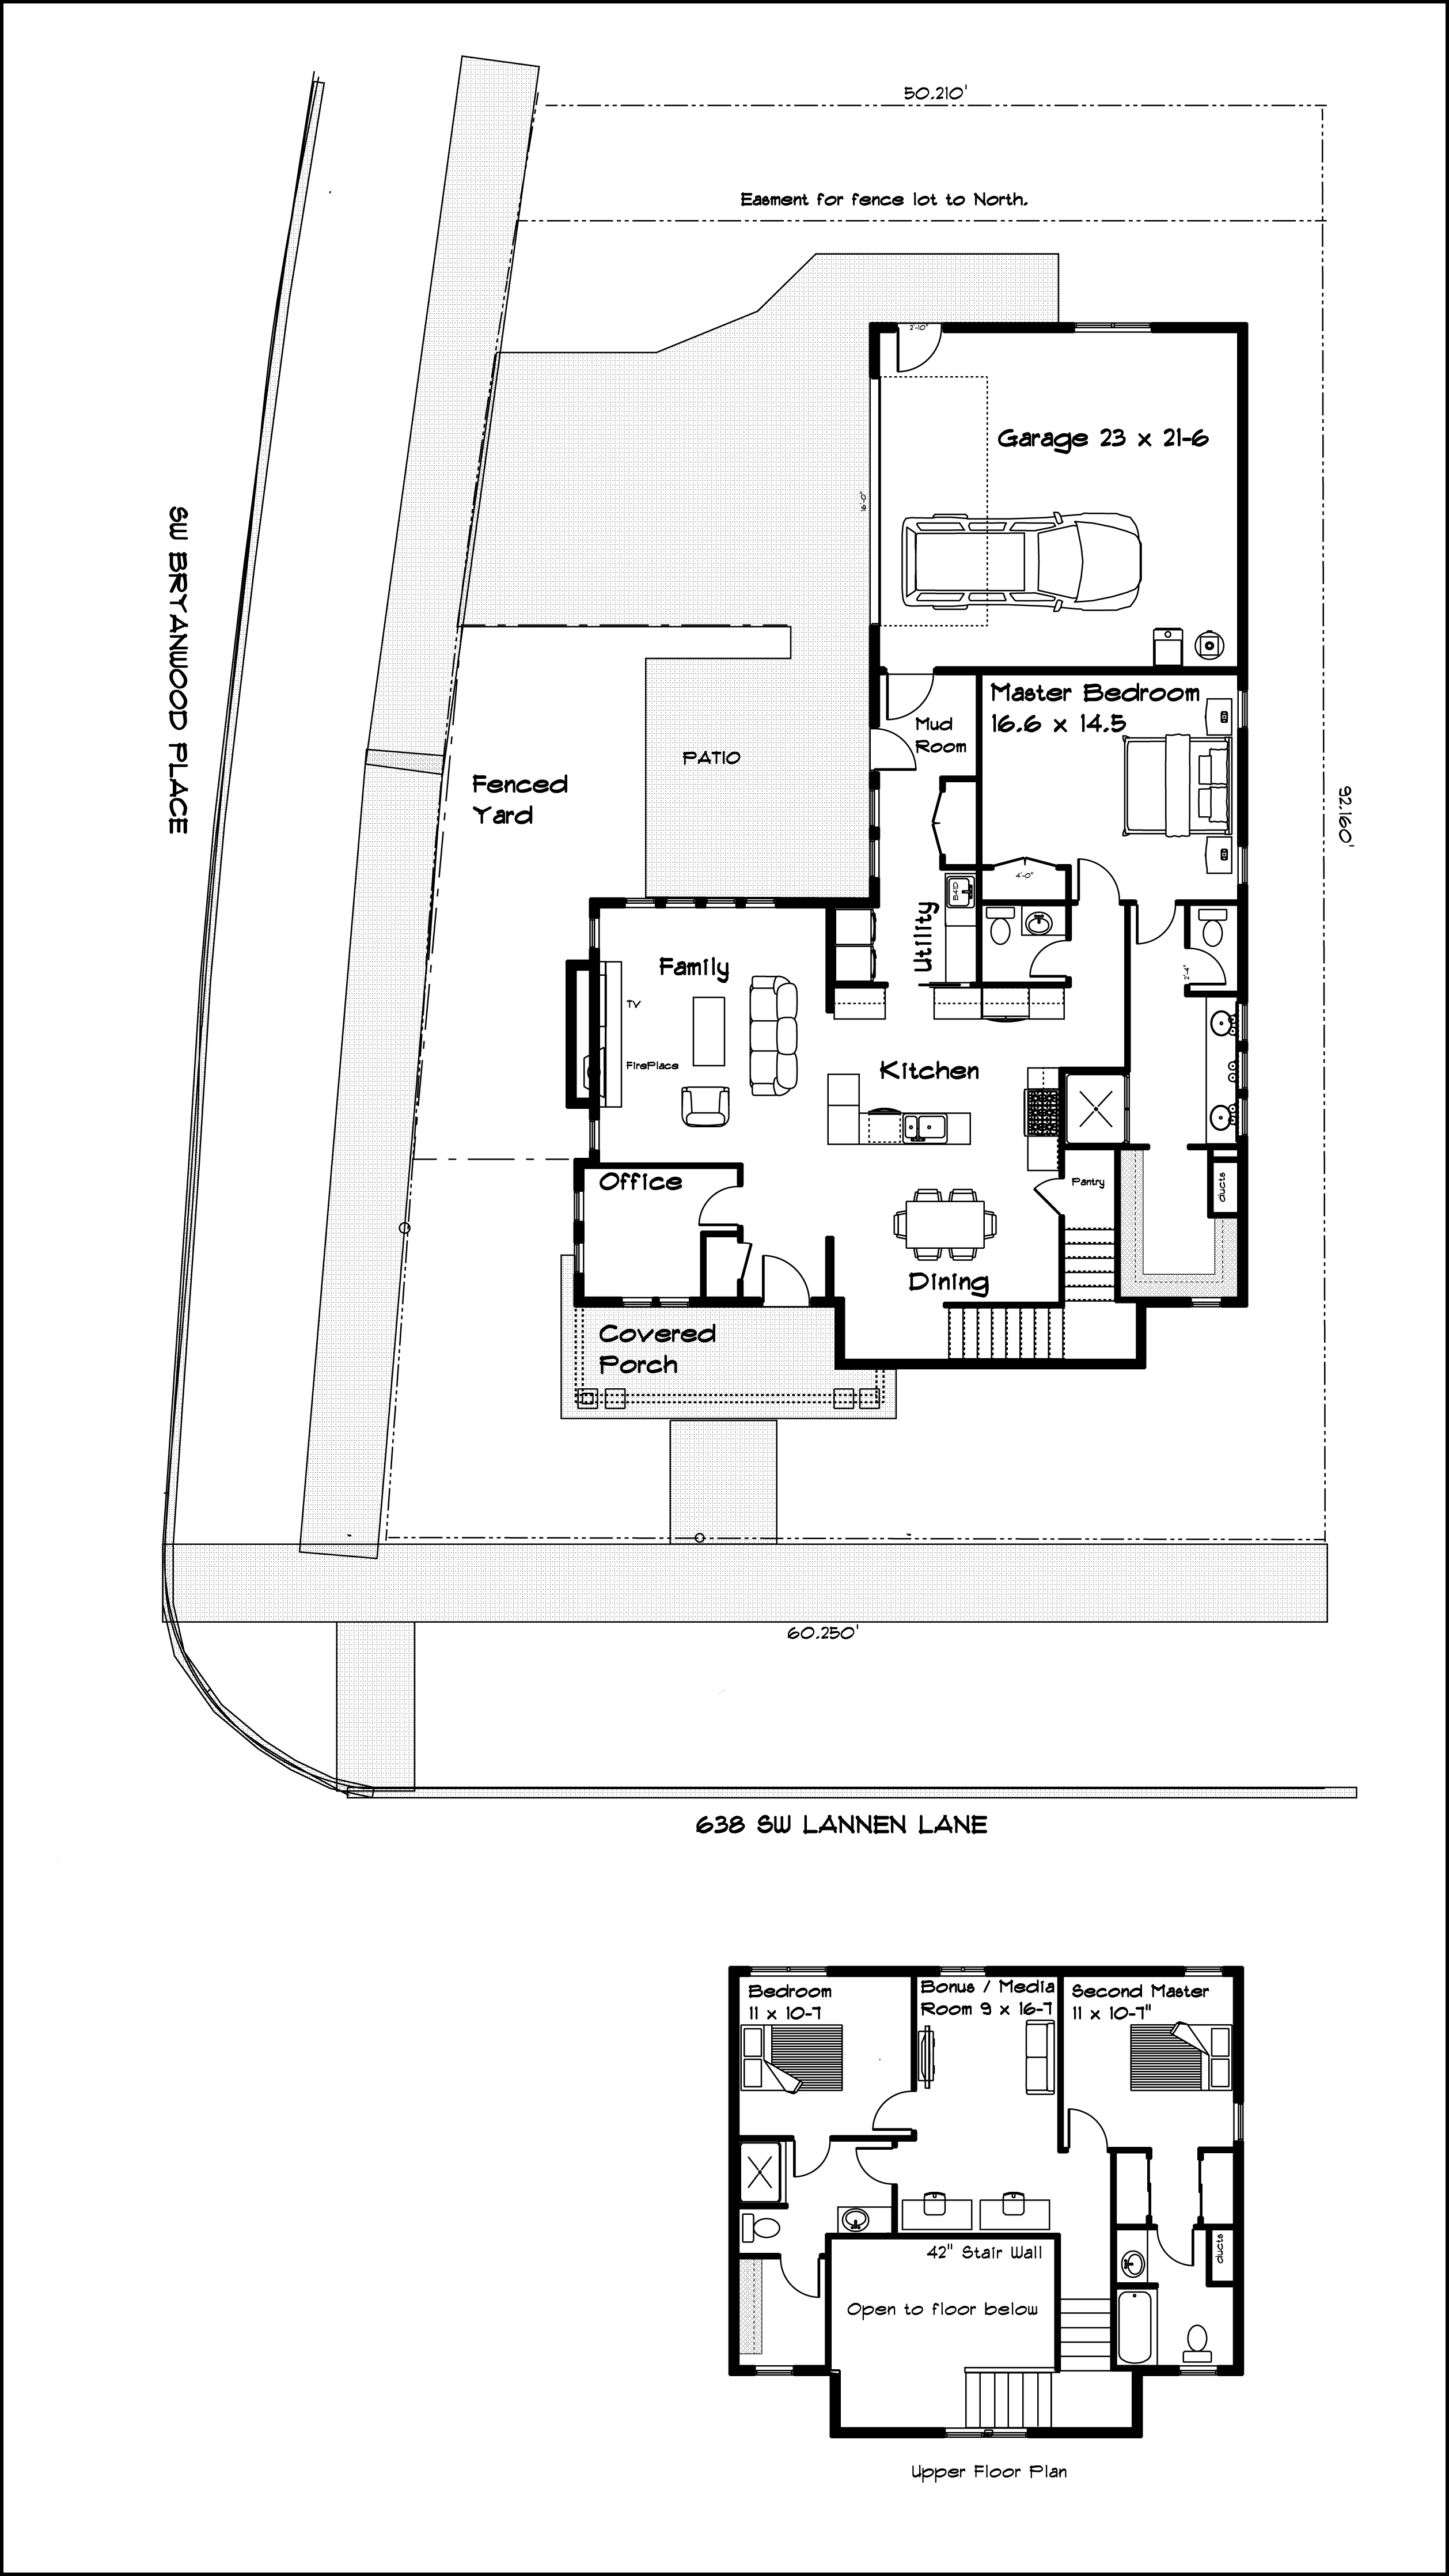 BrooksMill Lot 8 Lower and upper Floor plan with border 8.20.2016